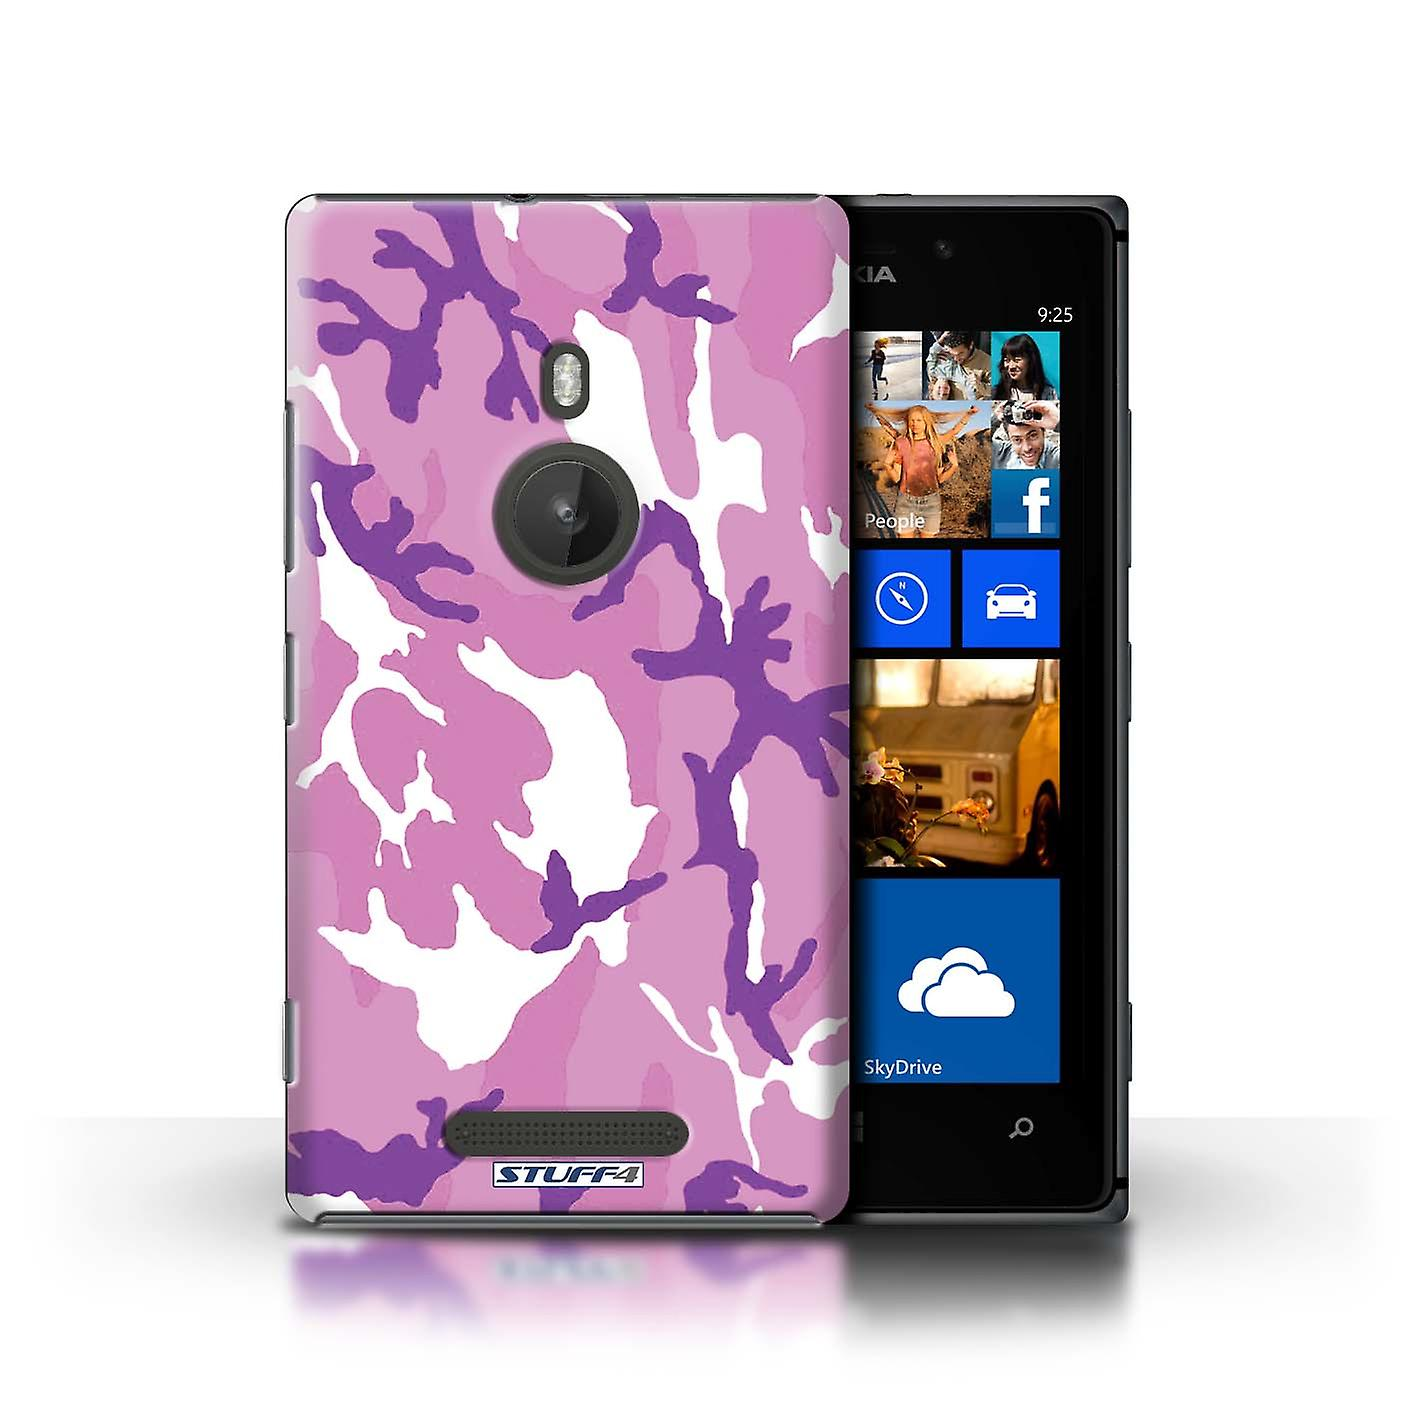 STUFF4 Case/Cover for Nokia Lumia 925/Pink 4/Camouflage Army Navy